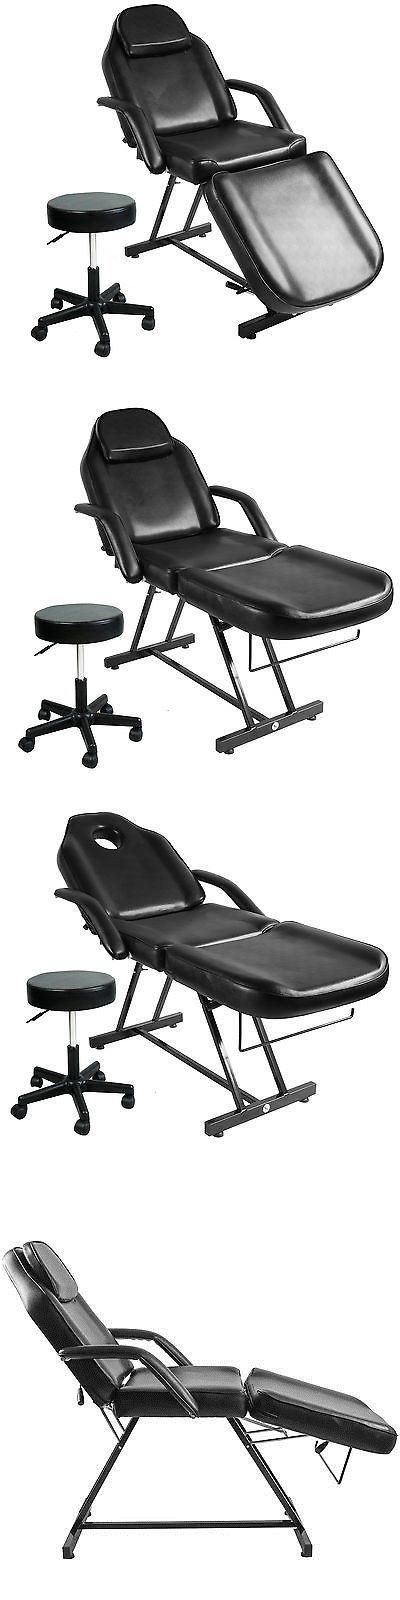 Stylist Stations and Furniture: Adjustable Hydraulic Massage Bed Chair W Stool Beauty Spa Tattoo Salon Equipment -> BUY IT NOW ONLY: $150.99 on eBay!